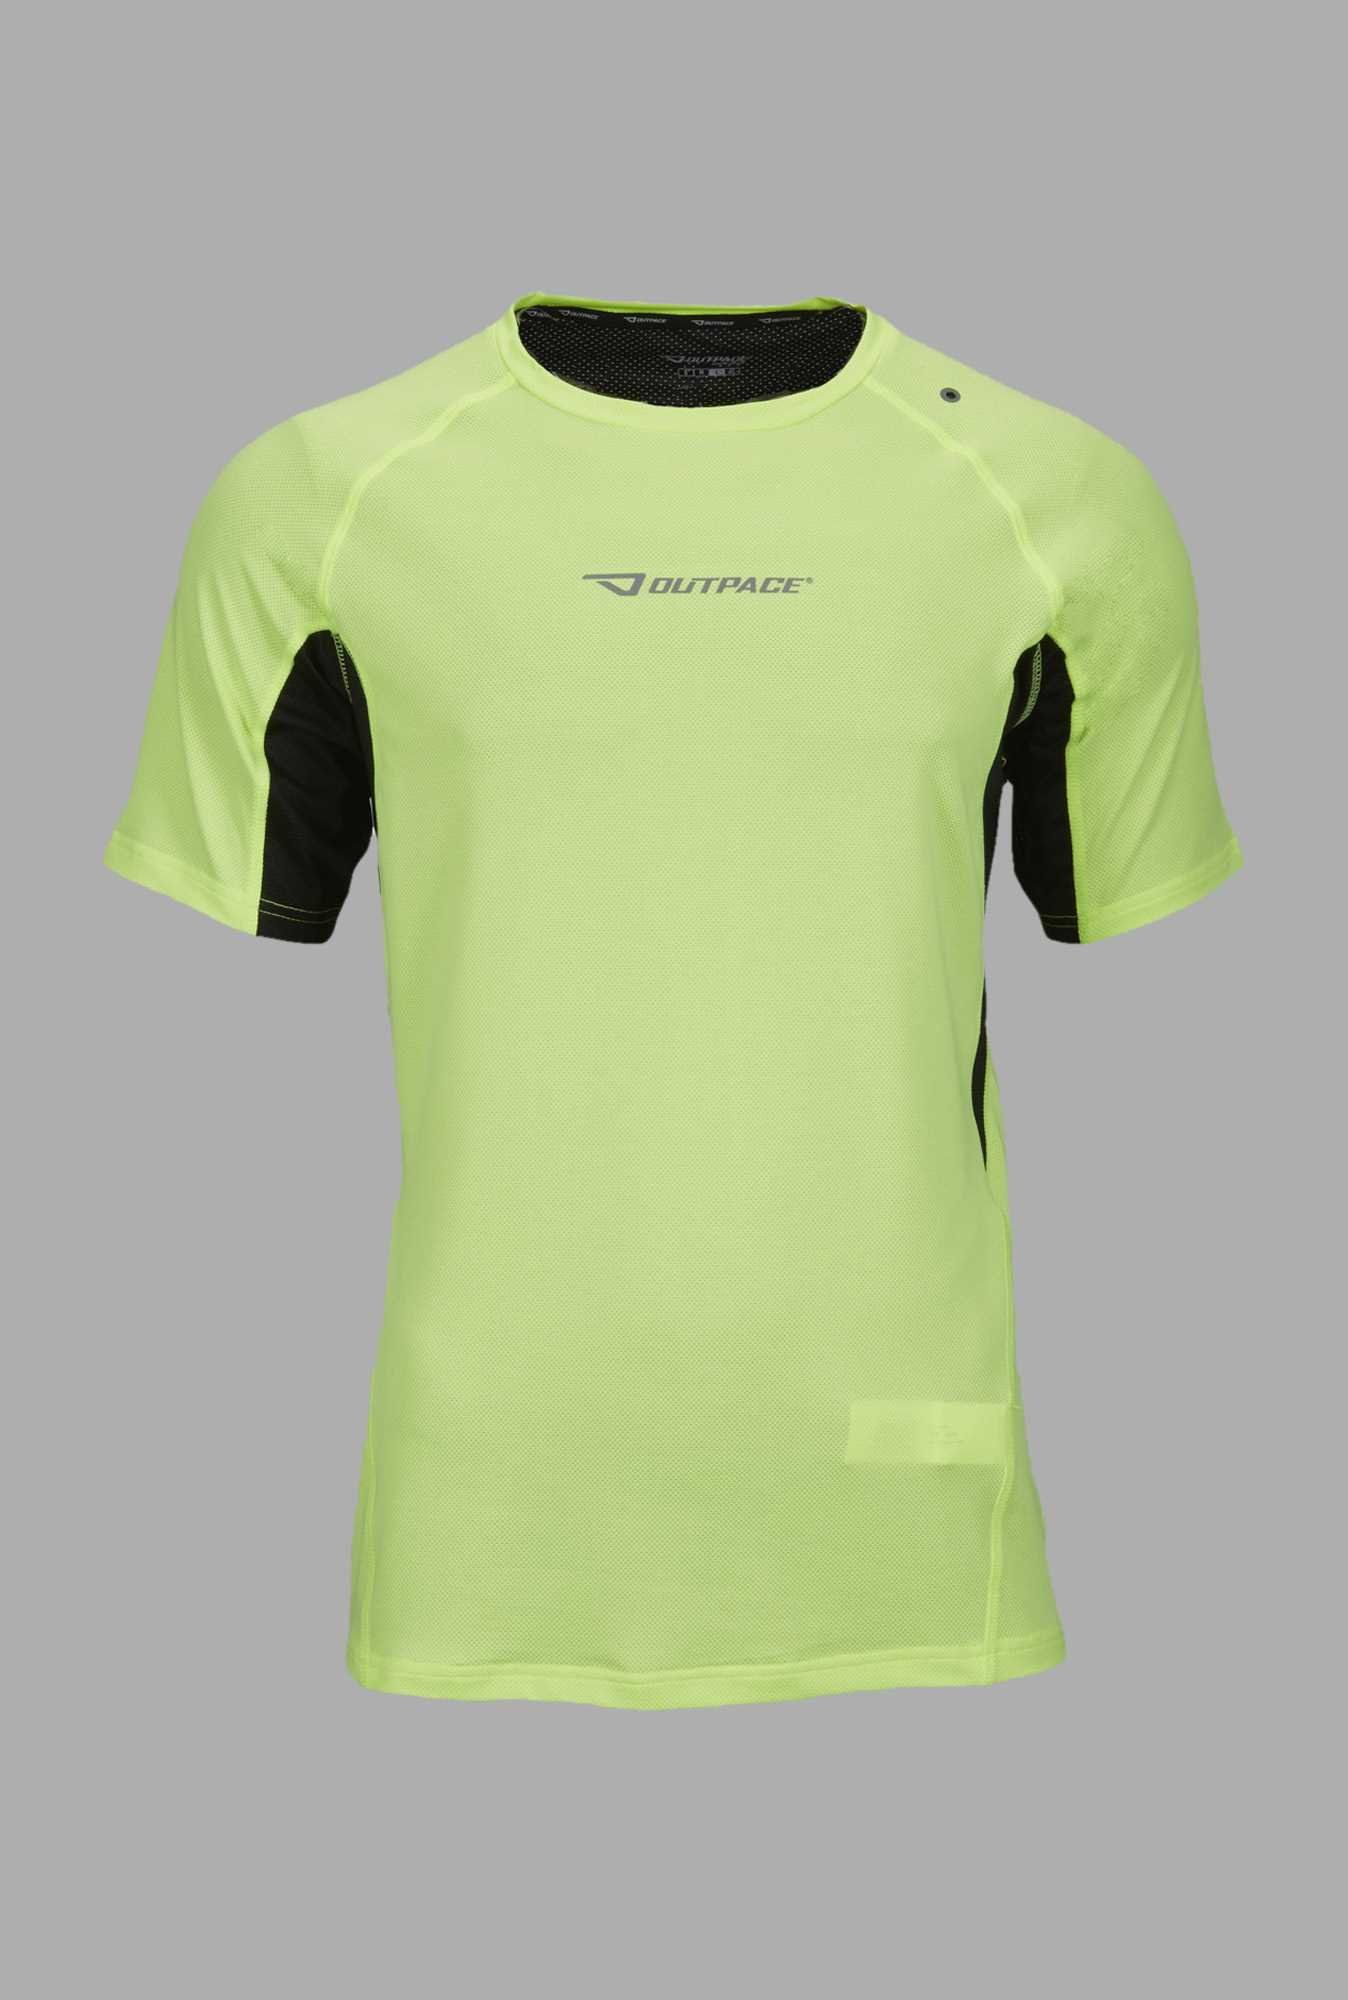 Outpace Lime Solid Runing T Shirt